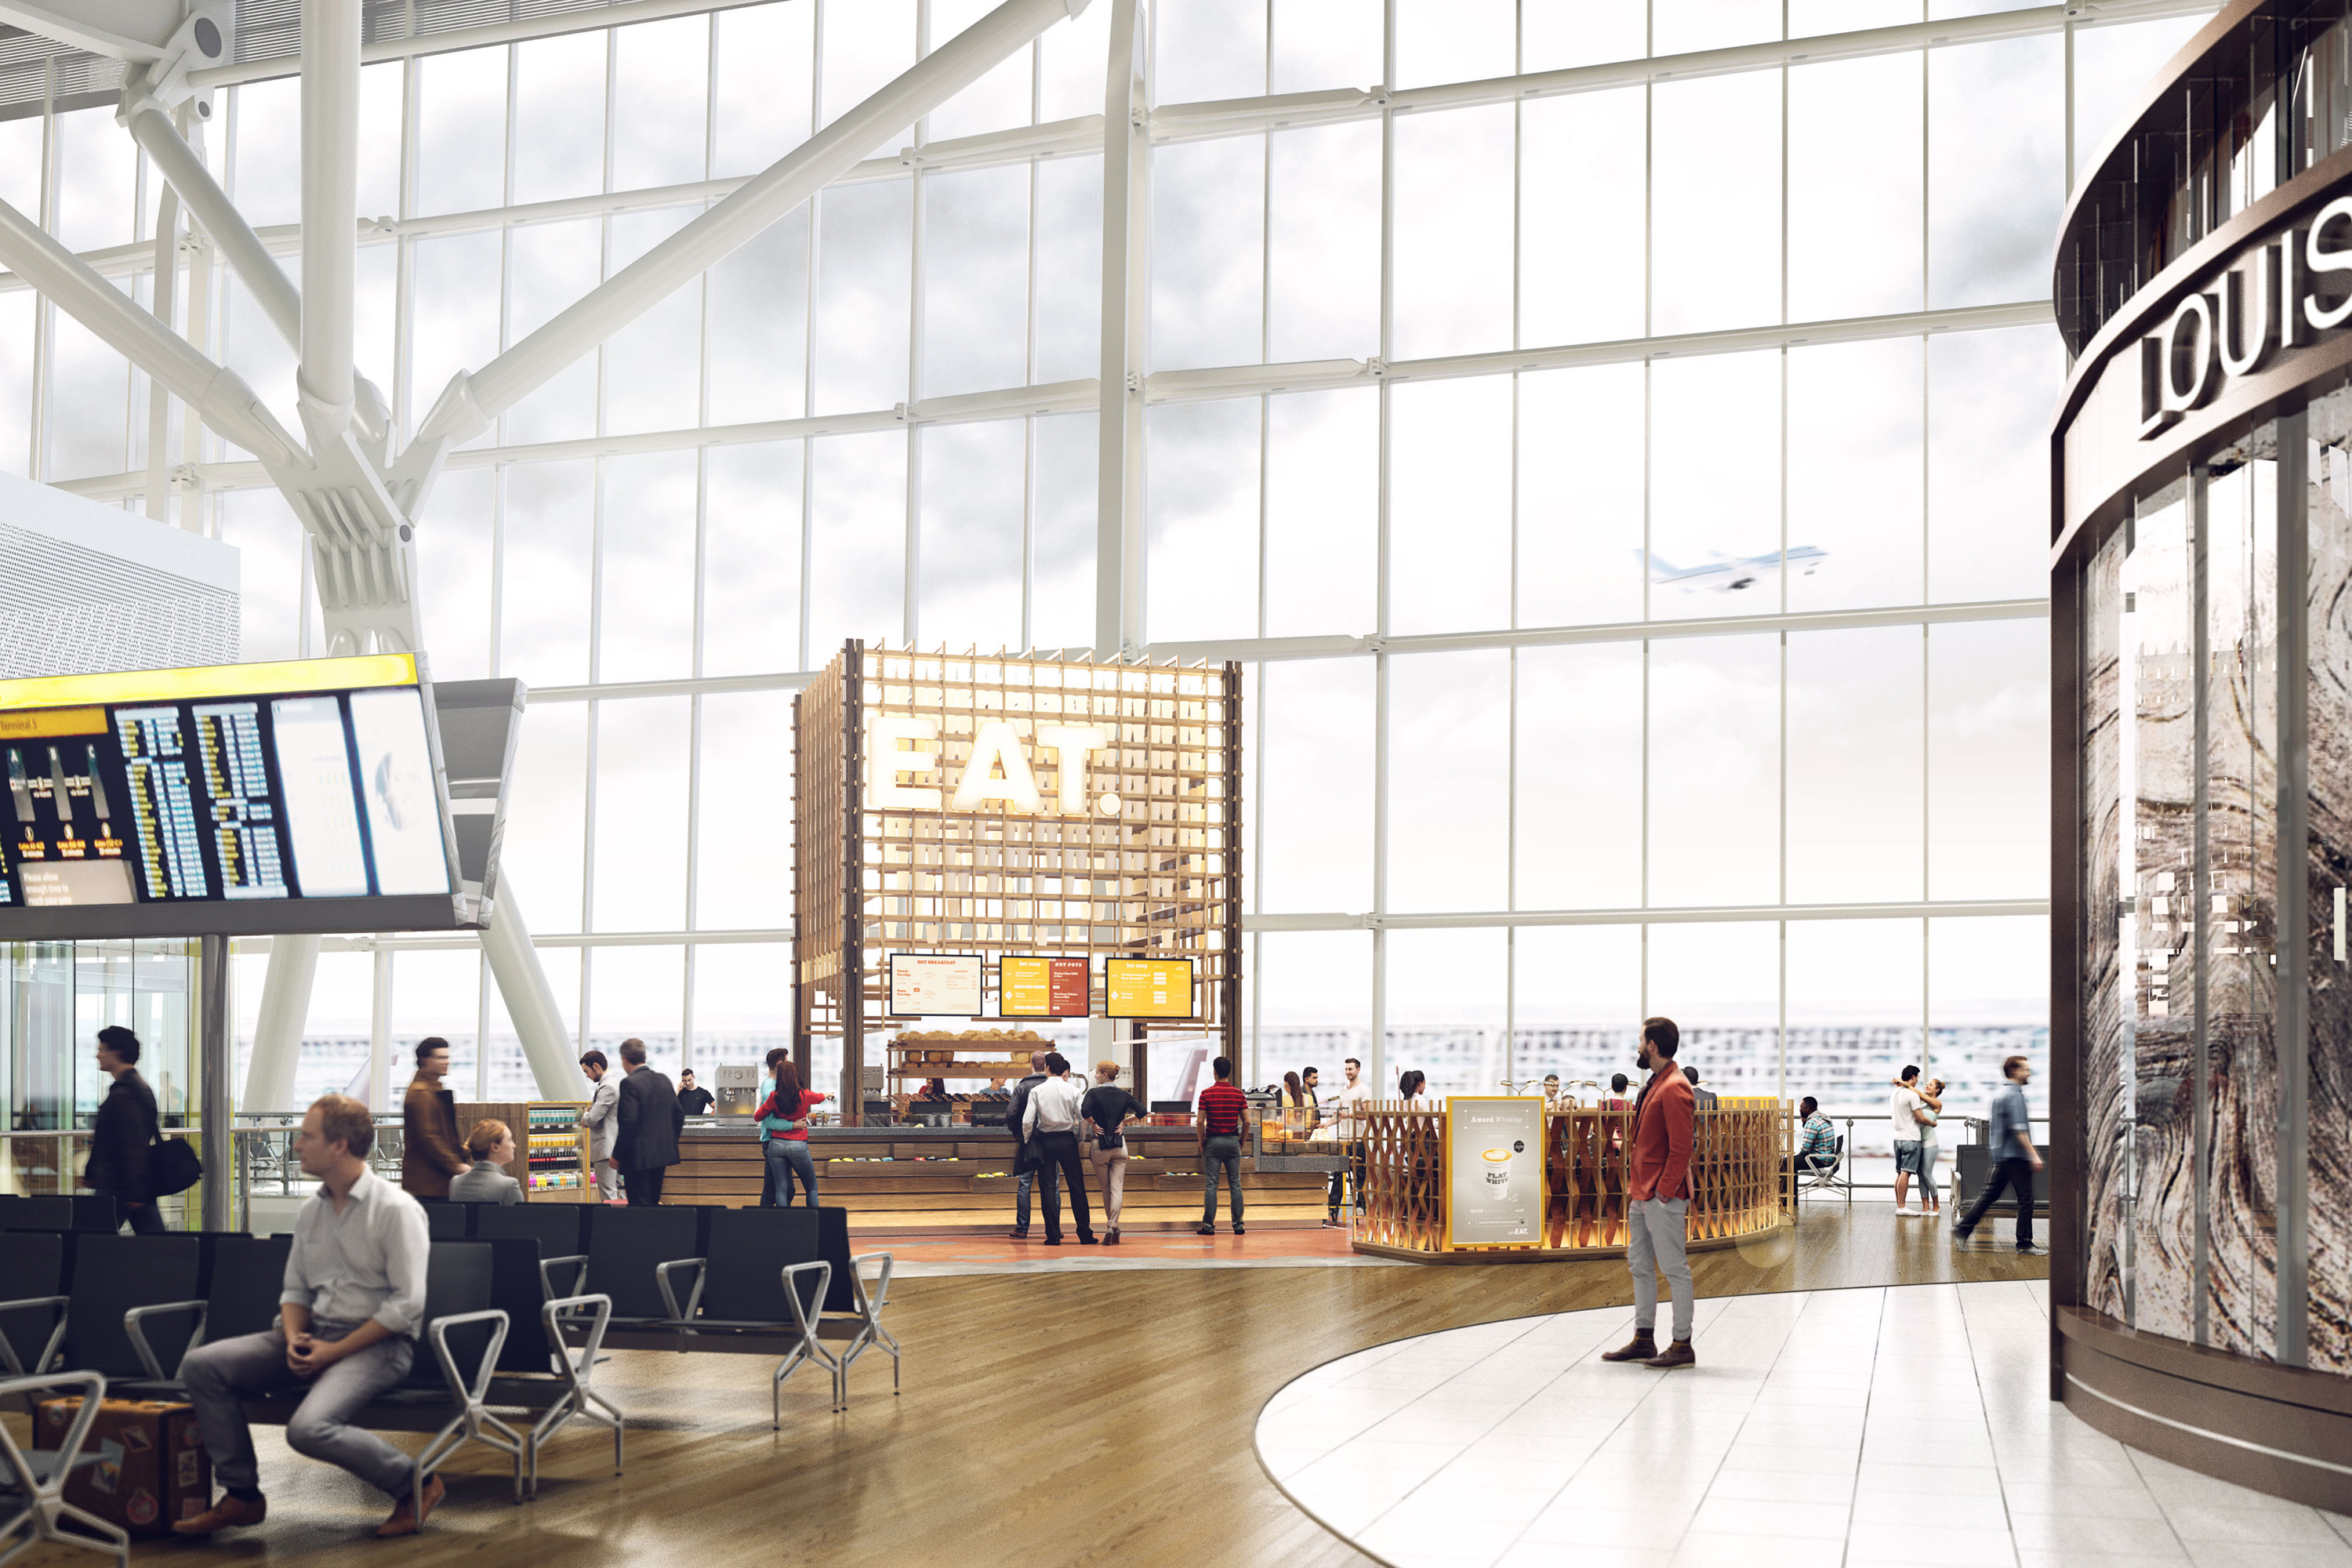 Eat Airport Interior 3D